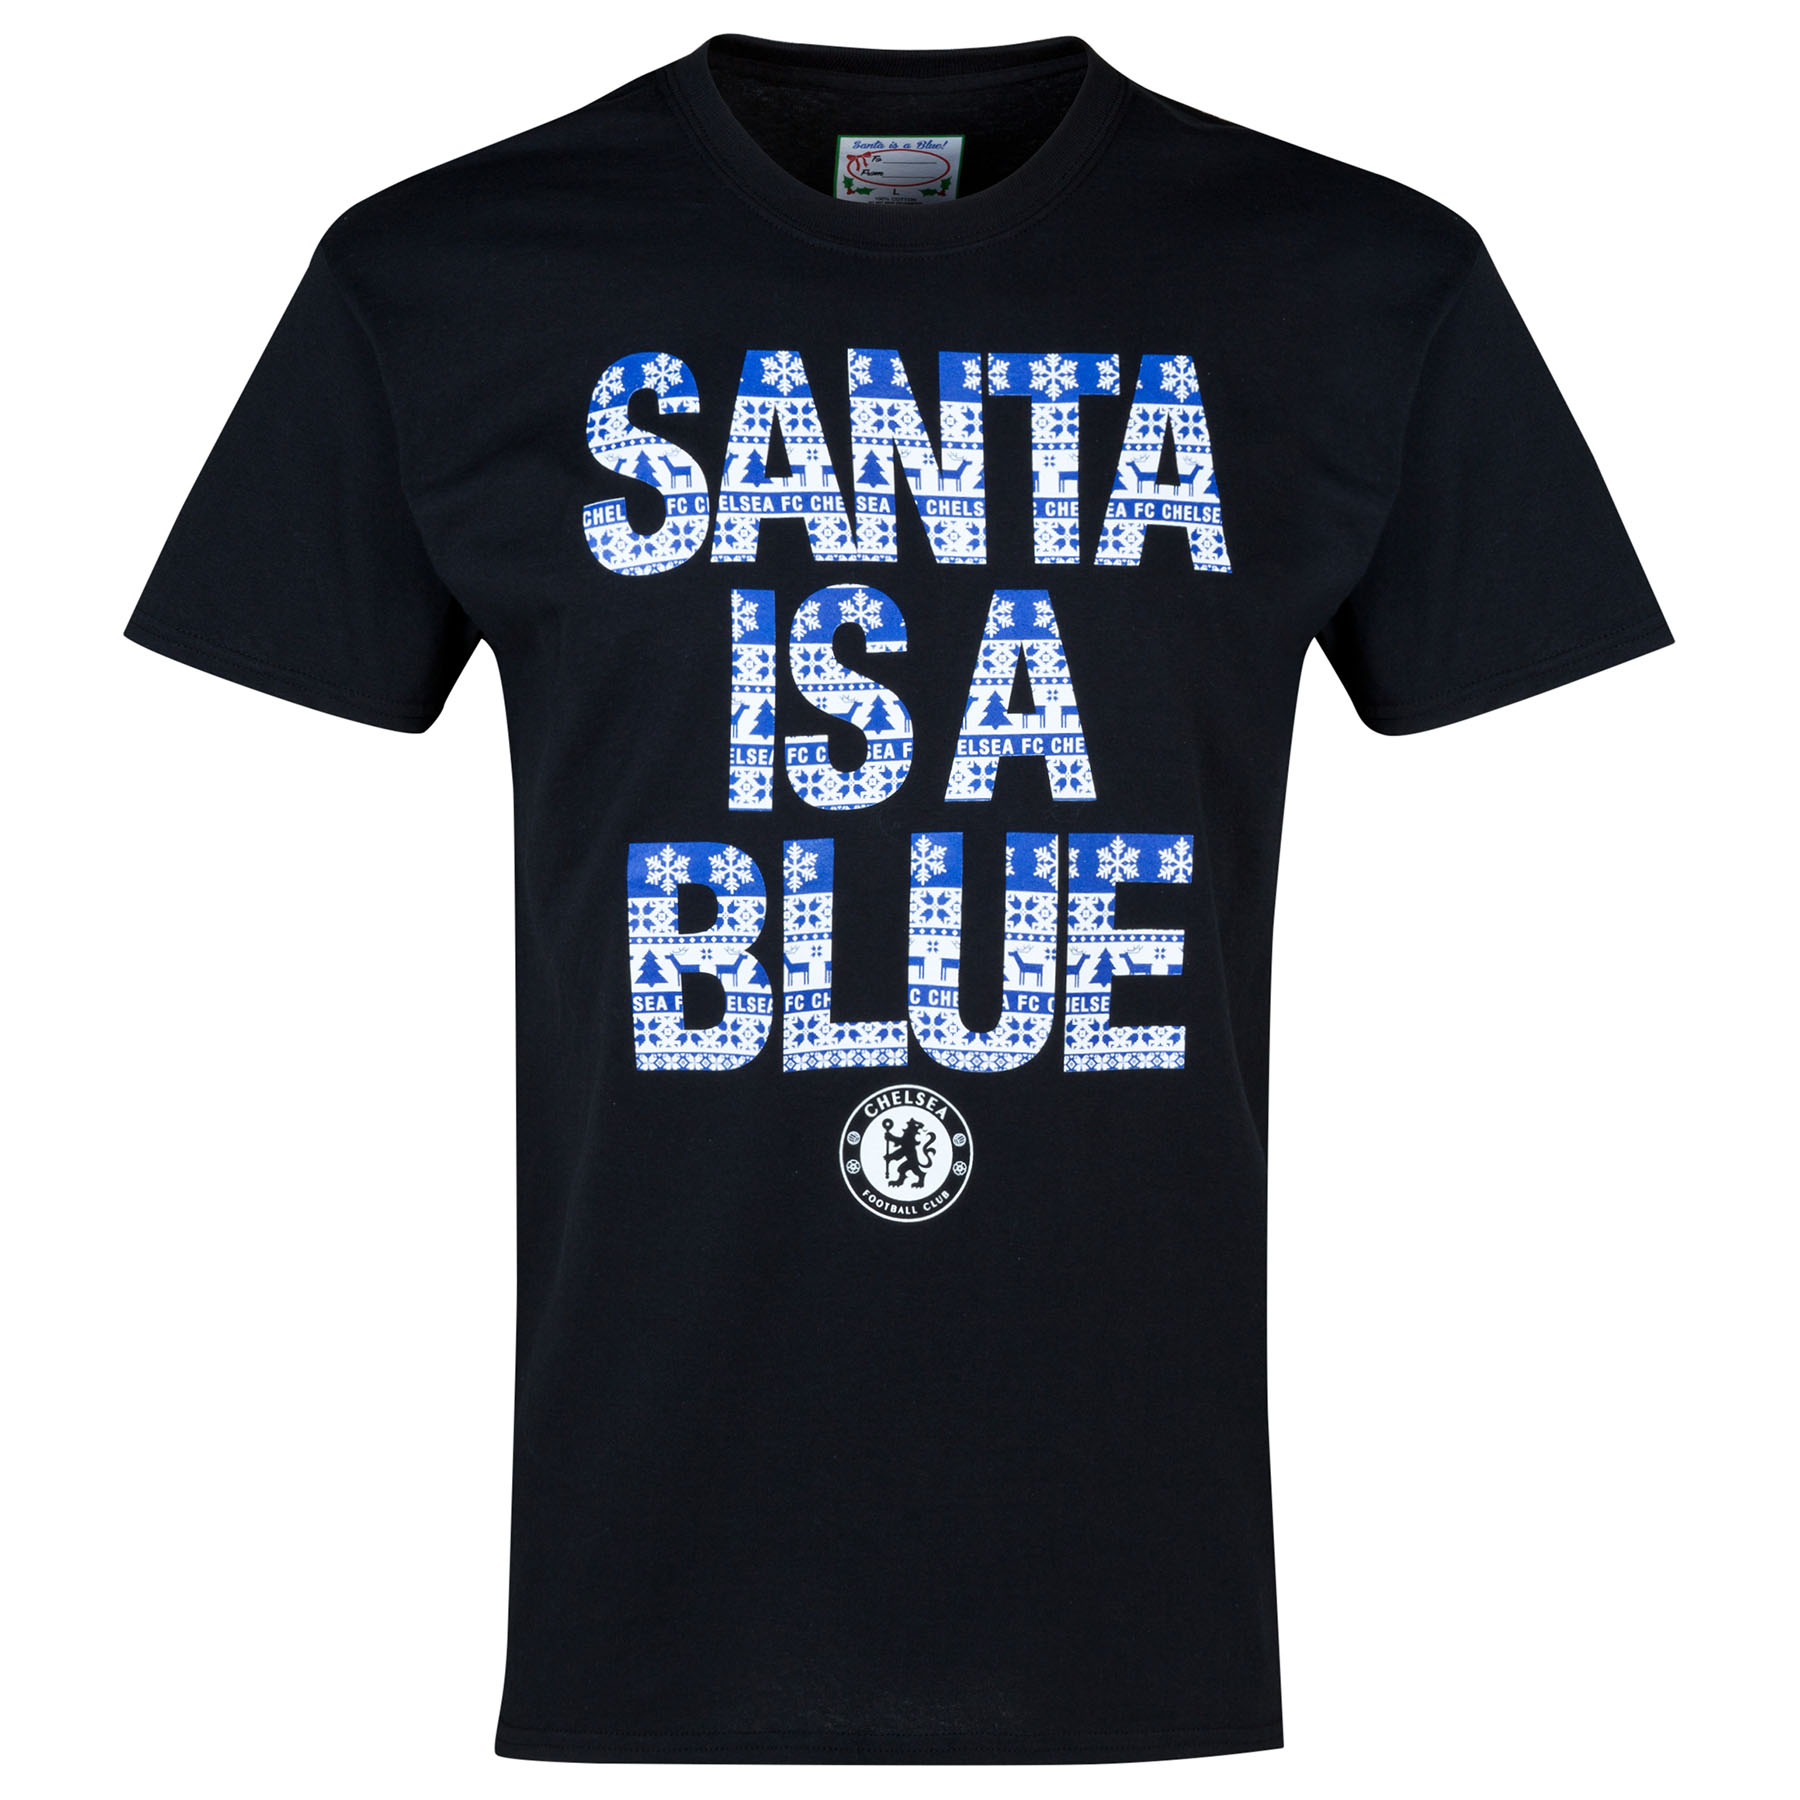 Chelsea Festive T-Shirt - Black - Kids